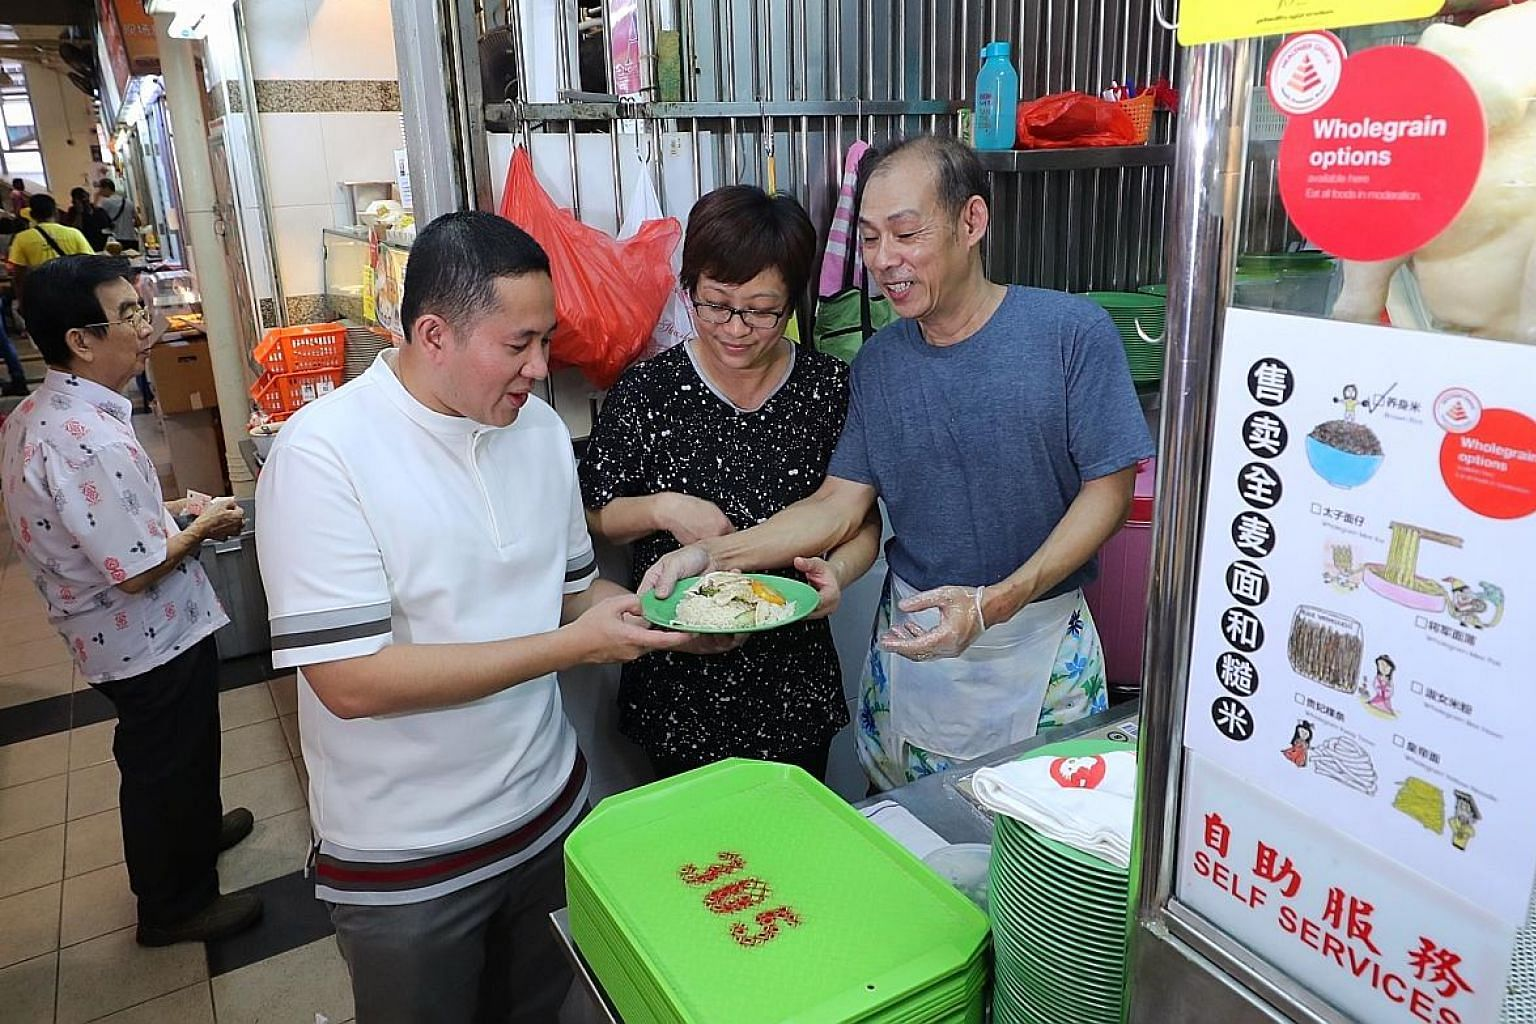 Uncle Jack Hainance Boneless Chicken Rice owner Jack Toh, 54, and his wife Sally Nyo, 52, showing Senior Parliamentary Secretary for Health and Home Affairs Amrin Amin a plate of whole grain chicken rice from their stall. The Health Promotion Board a